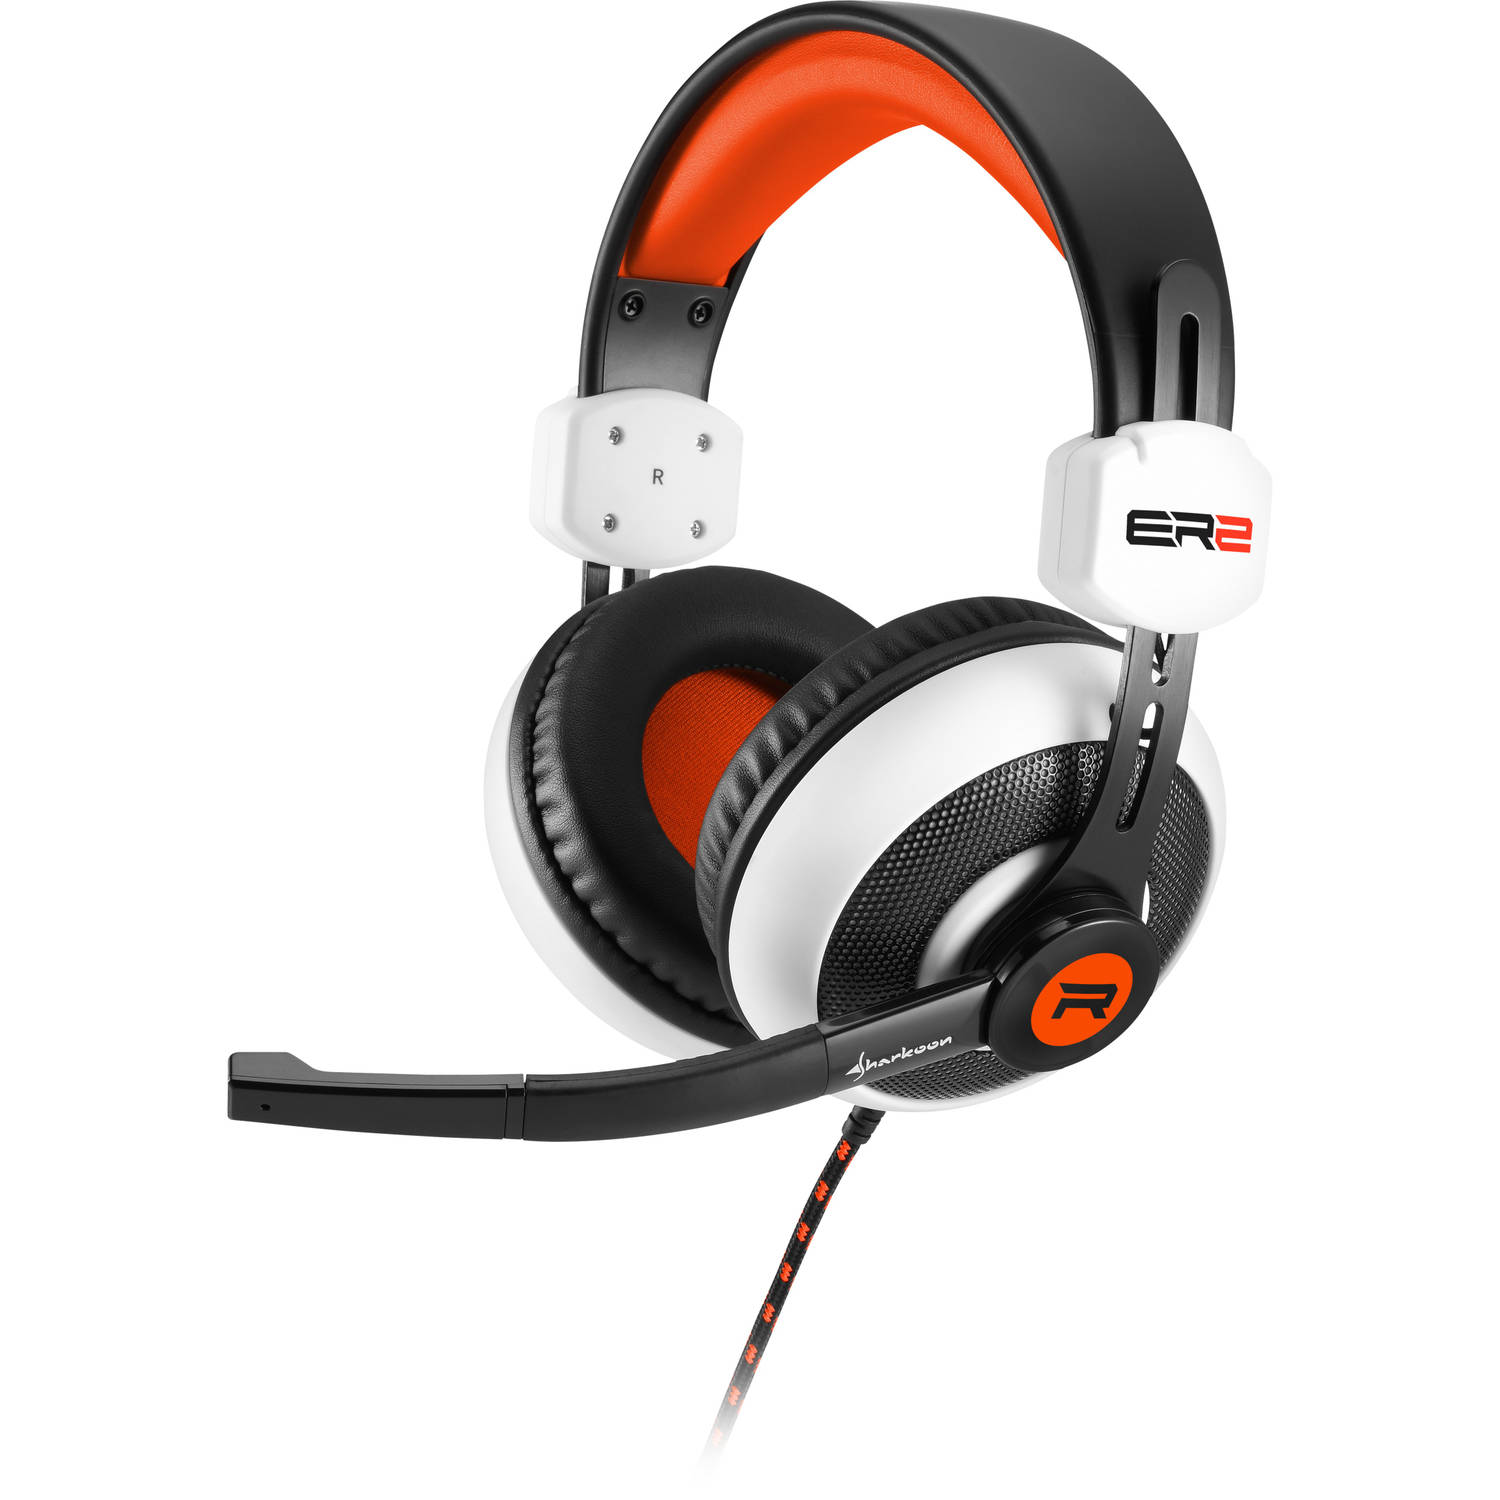 RUSH ER2 Gaming Stereo Headset